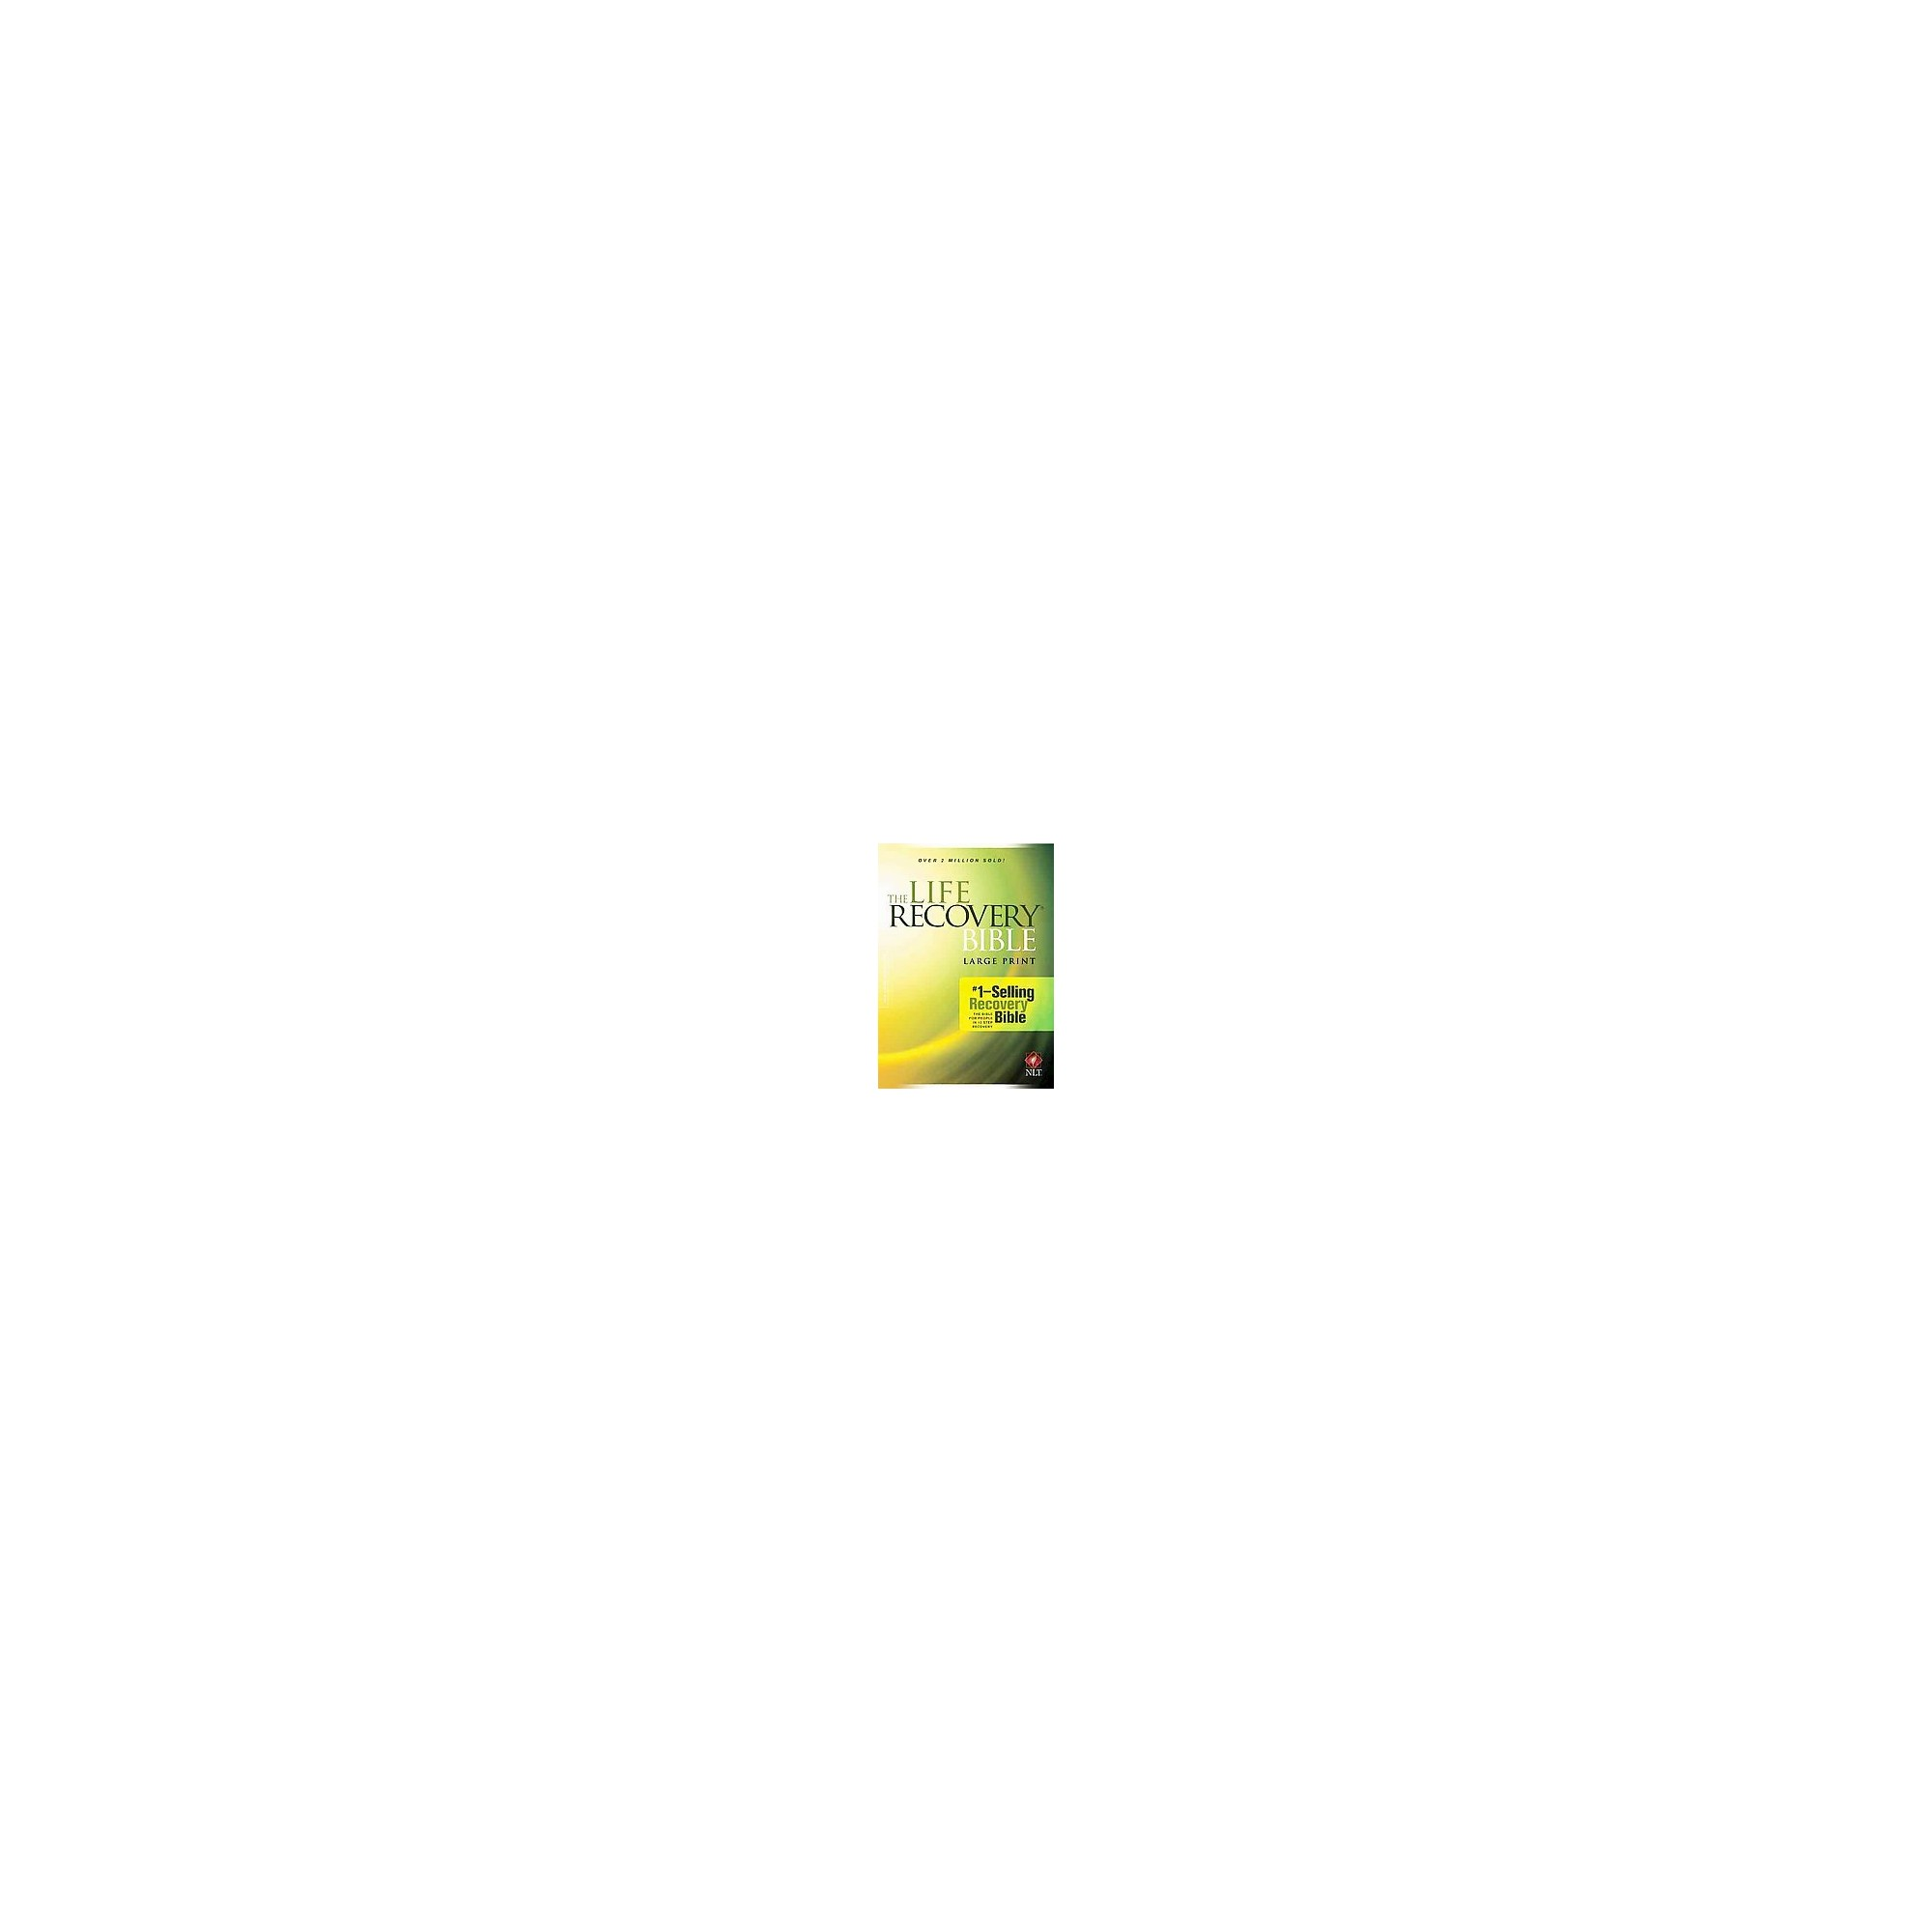 Life Recovery Bible New Living Translation Large Print